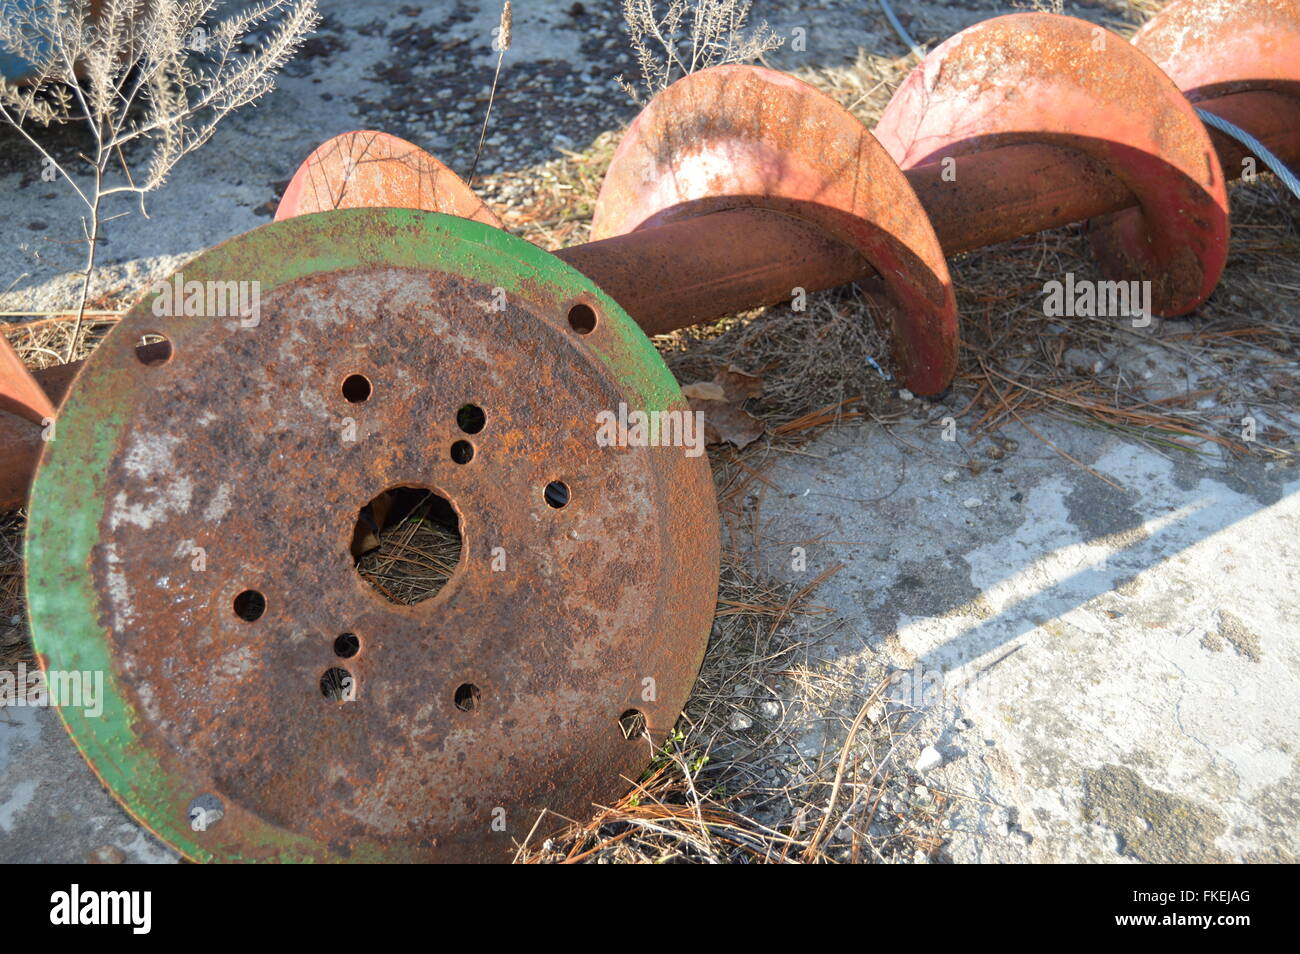 a-picture-of-a-rustic-auger-and-a-old-di